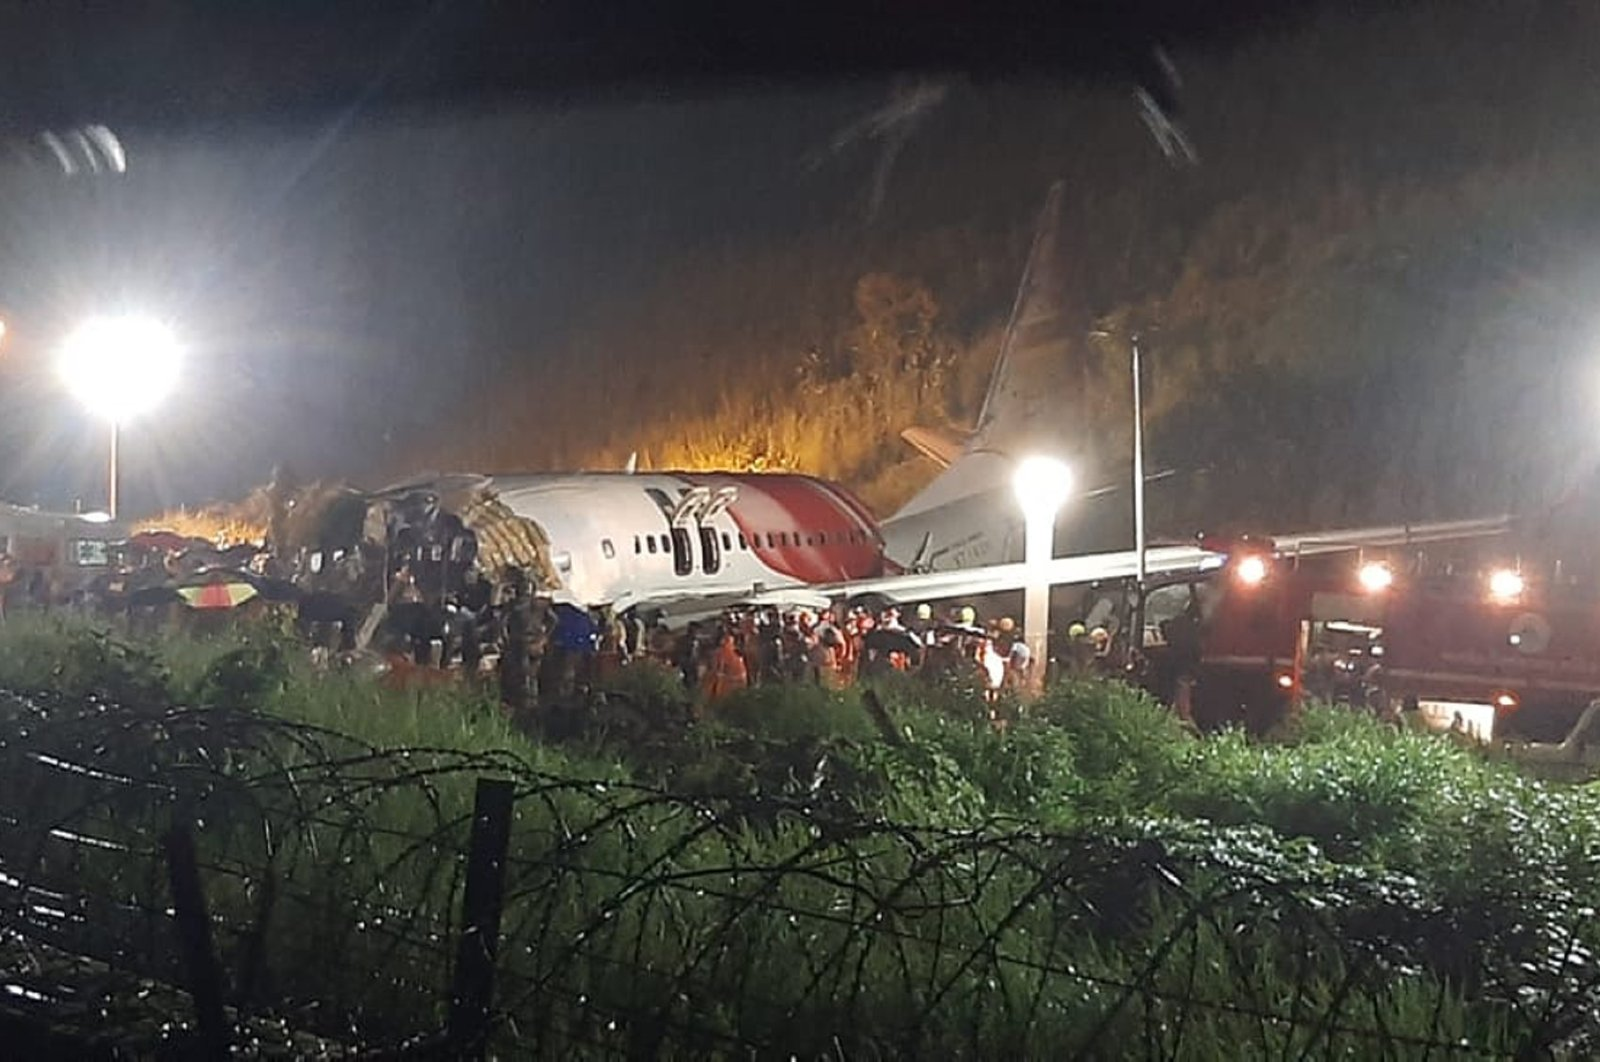 The Air India Express flight that skidded off a runway while landing at the airport in Kozhikode, Kerala state, India, Aug. 7, 2020. (AP Photo)